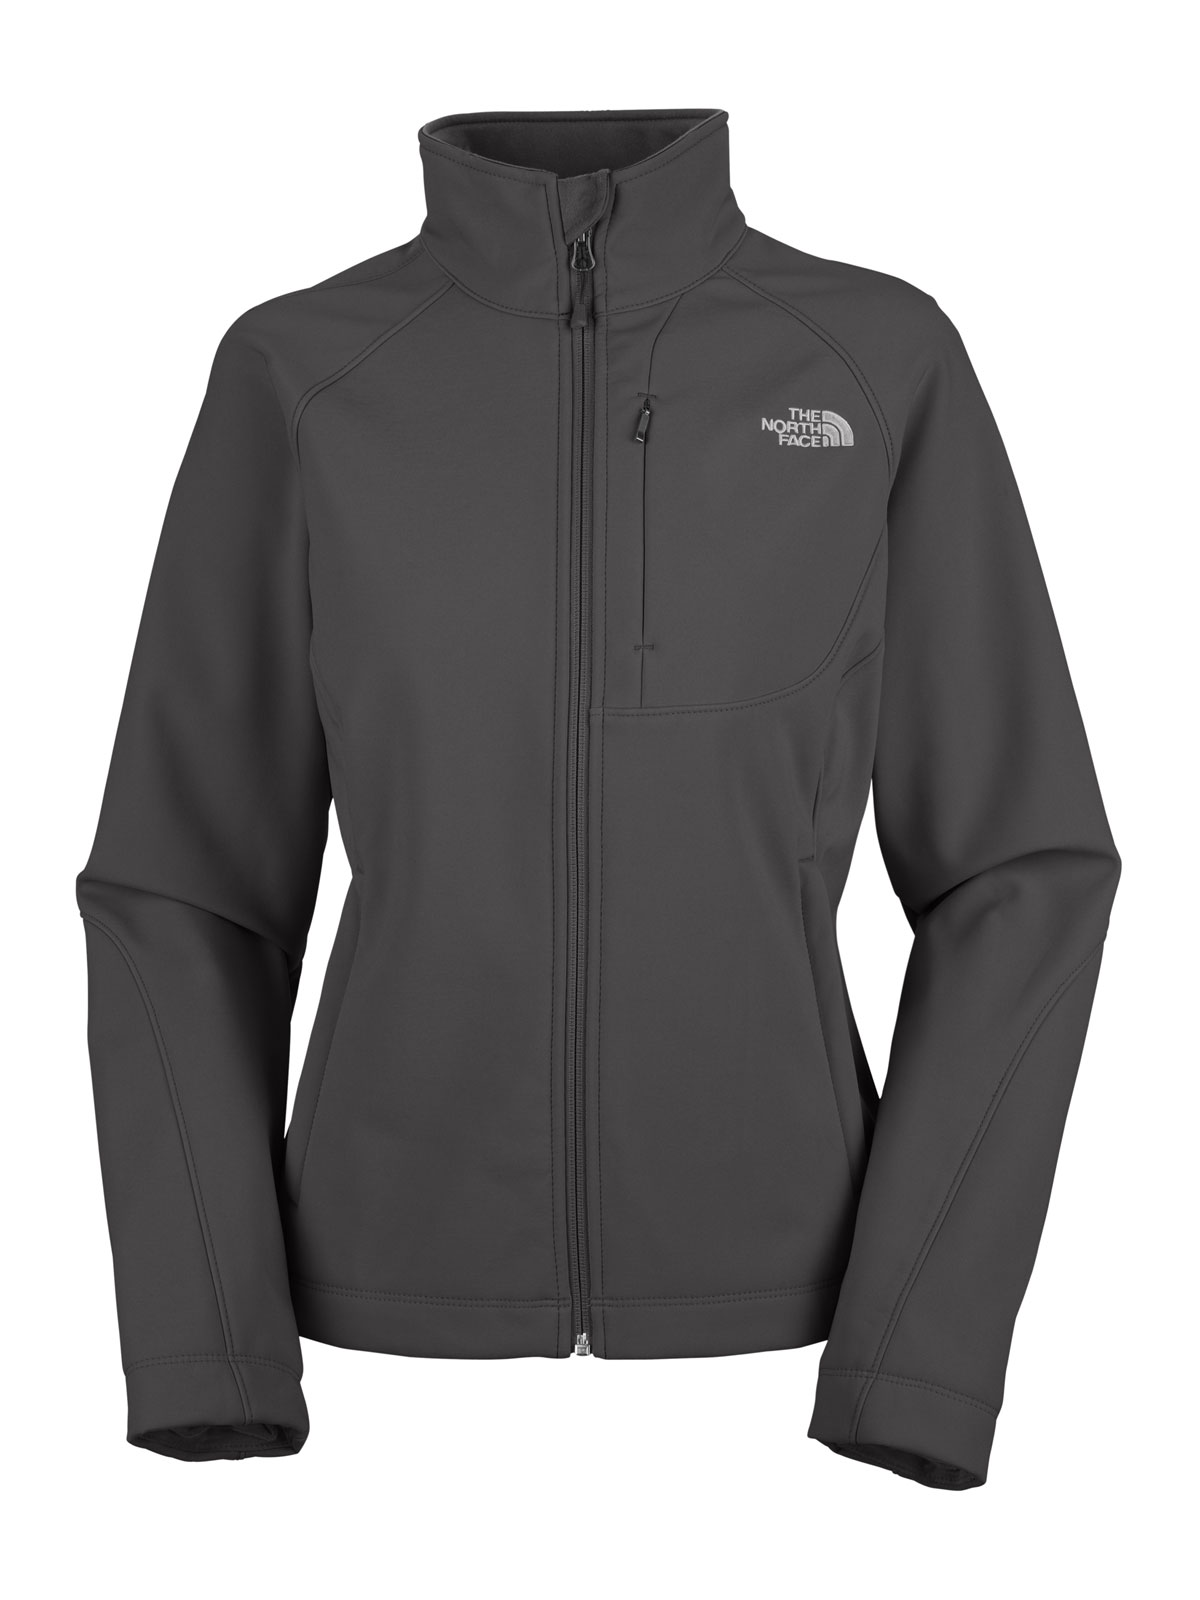 01373a054 The North Face Apex Bionic Soft Shell Jacket Women's at NorwaySports.com